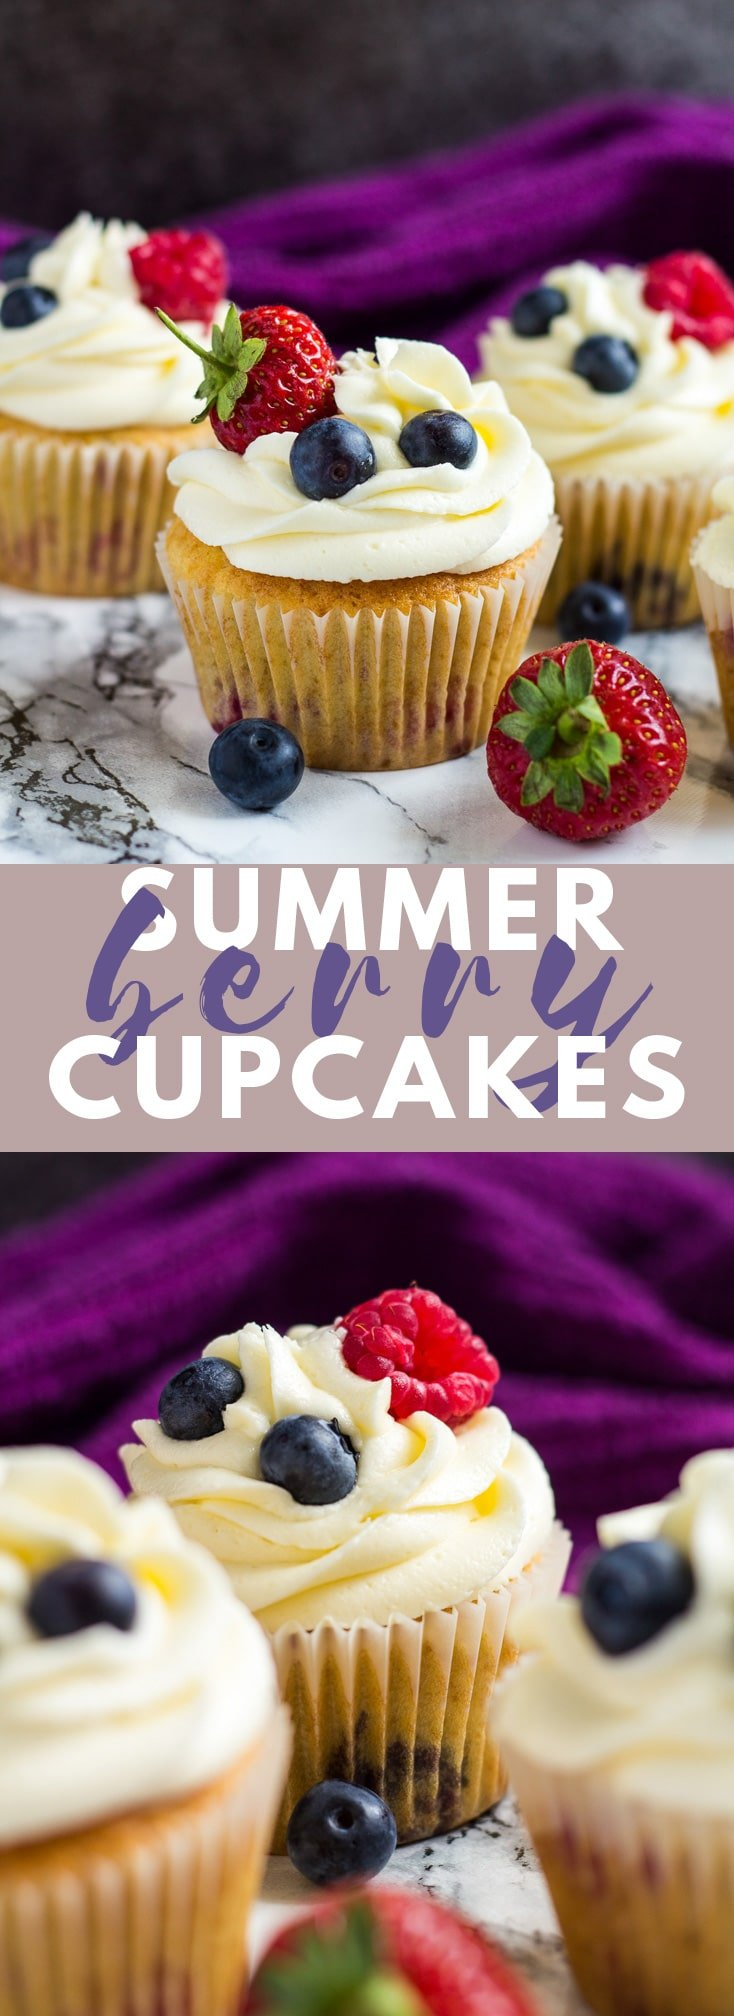 Summer Berry Cupcakes - Deliciously moist and fluffy vanilla cupcakes stuffed with summer berries, and topped with a sweet buttercream frosting!